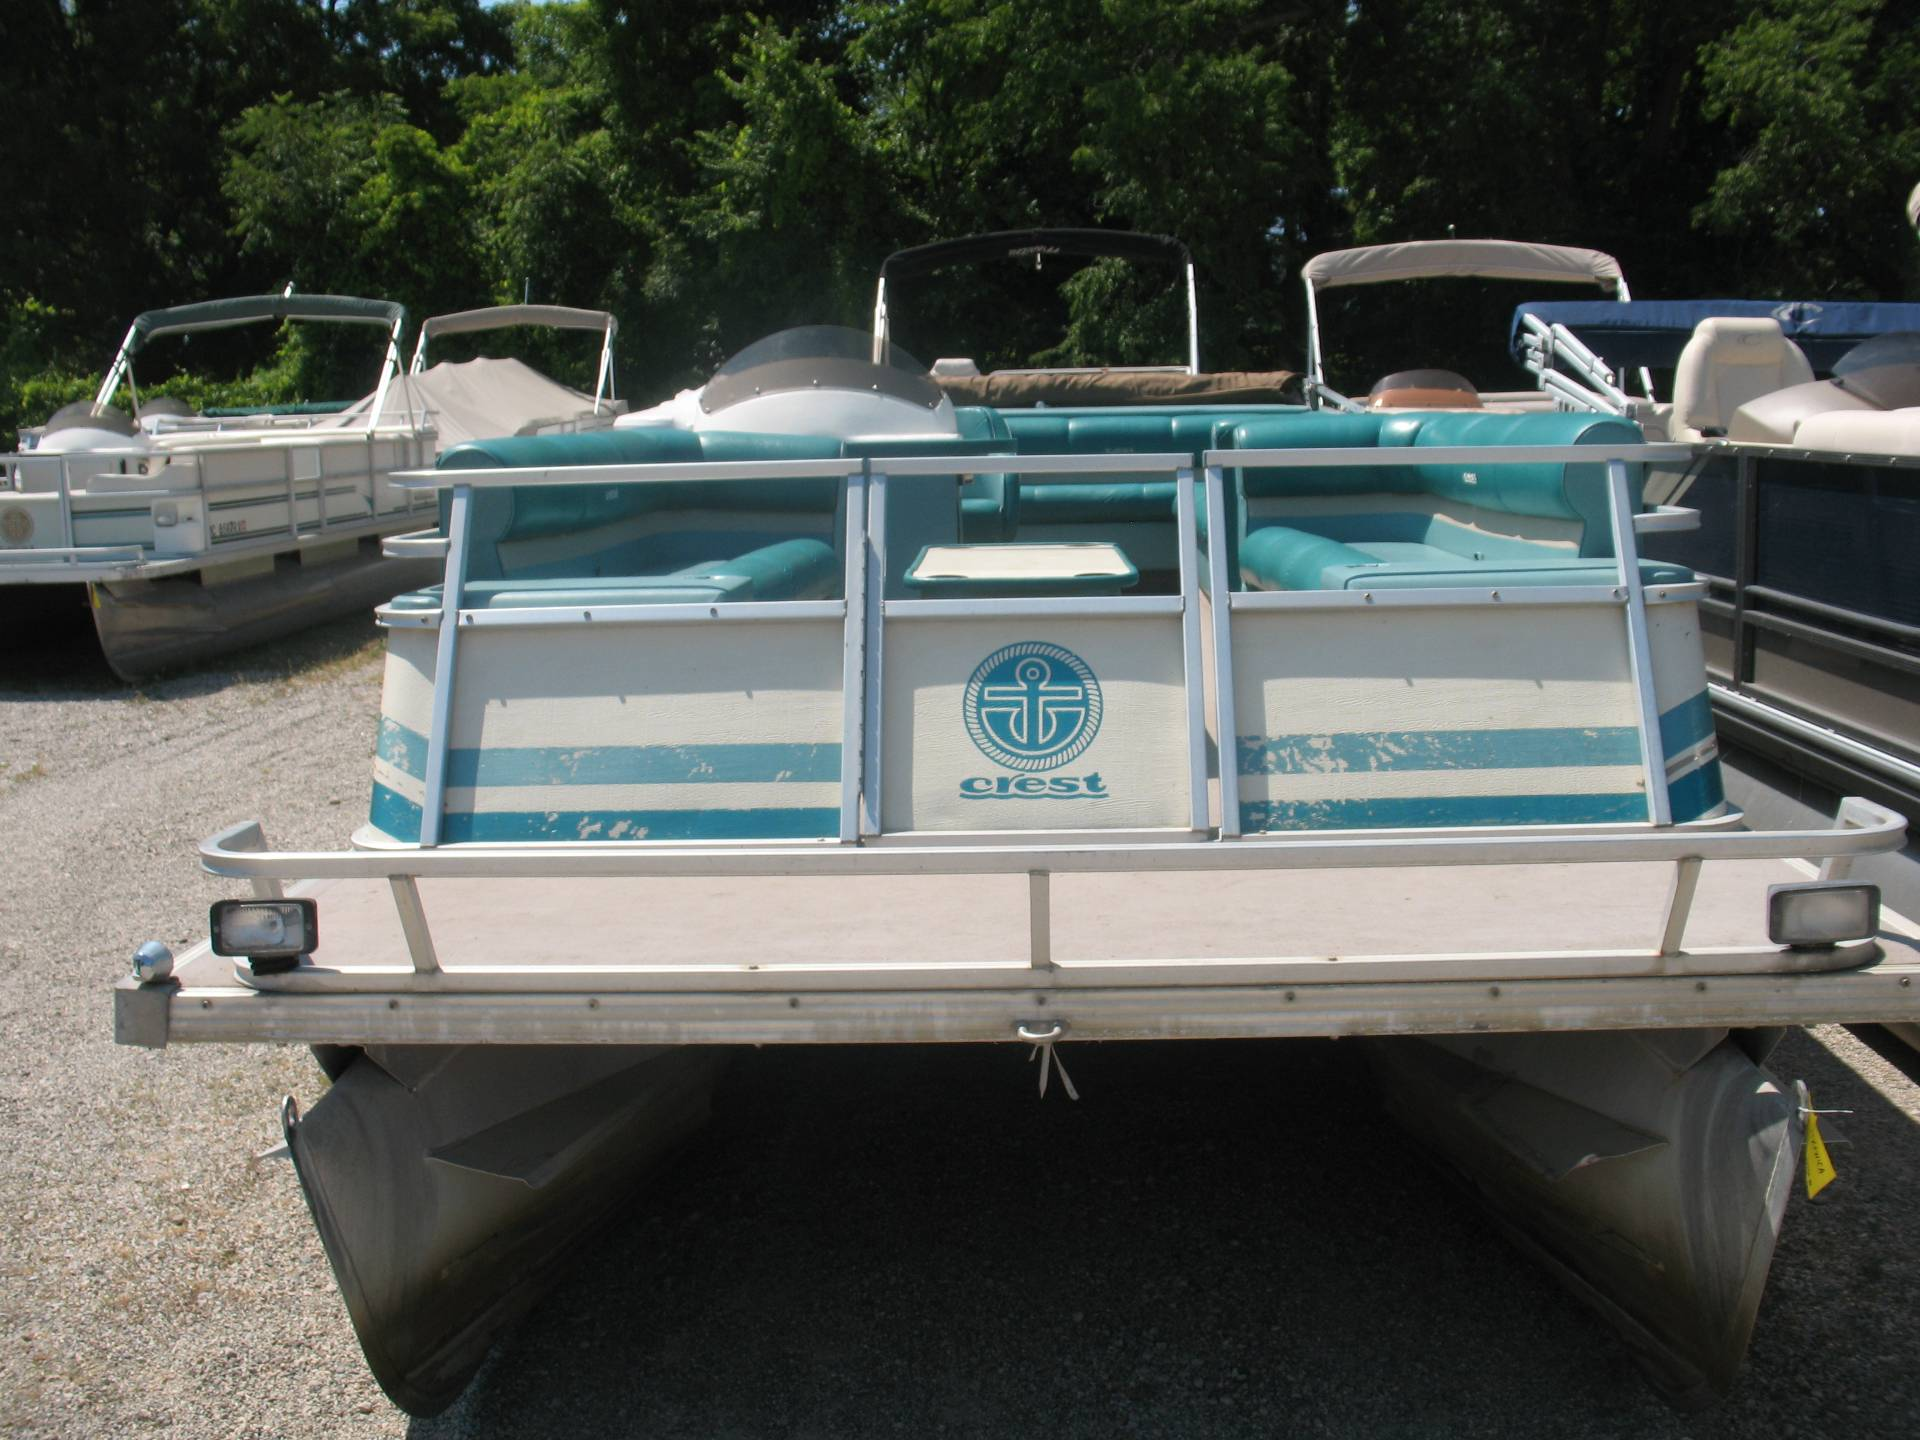 1995 Crest Crest III Caribbean in Manitou Beach, Michigan